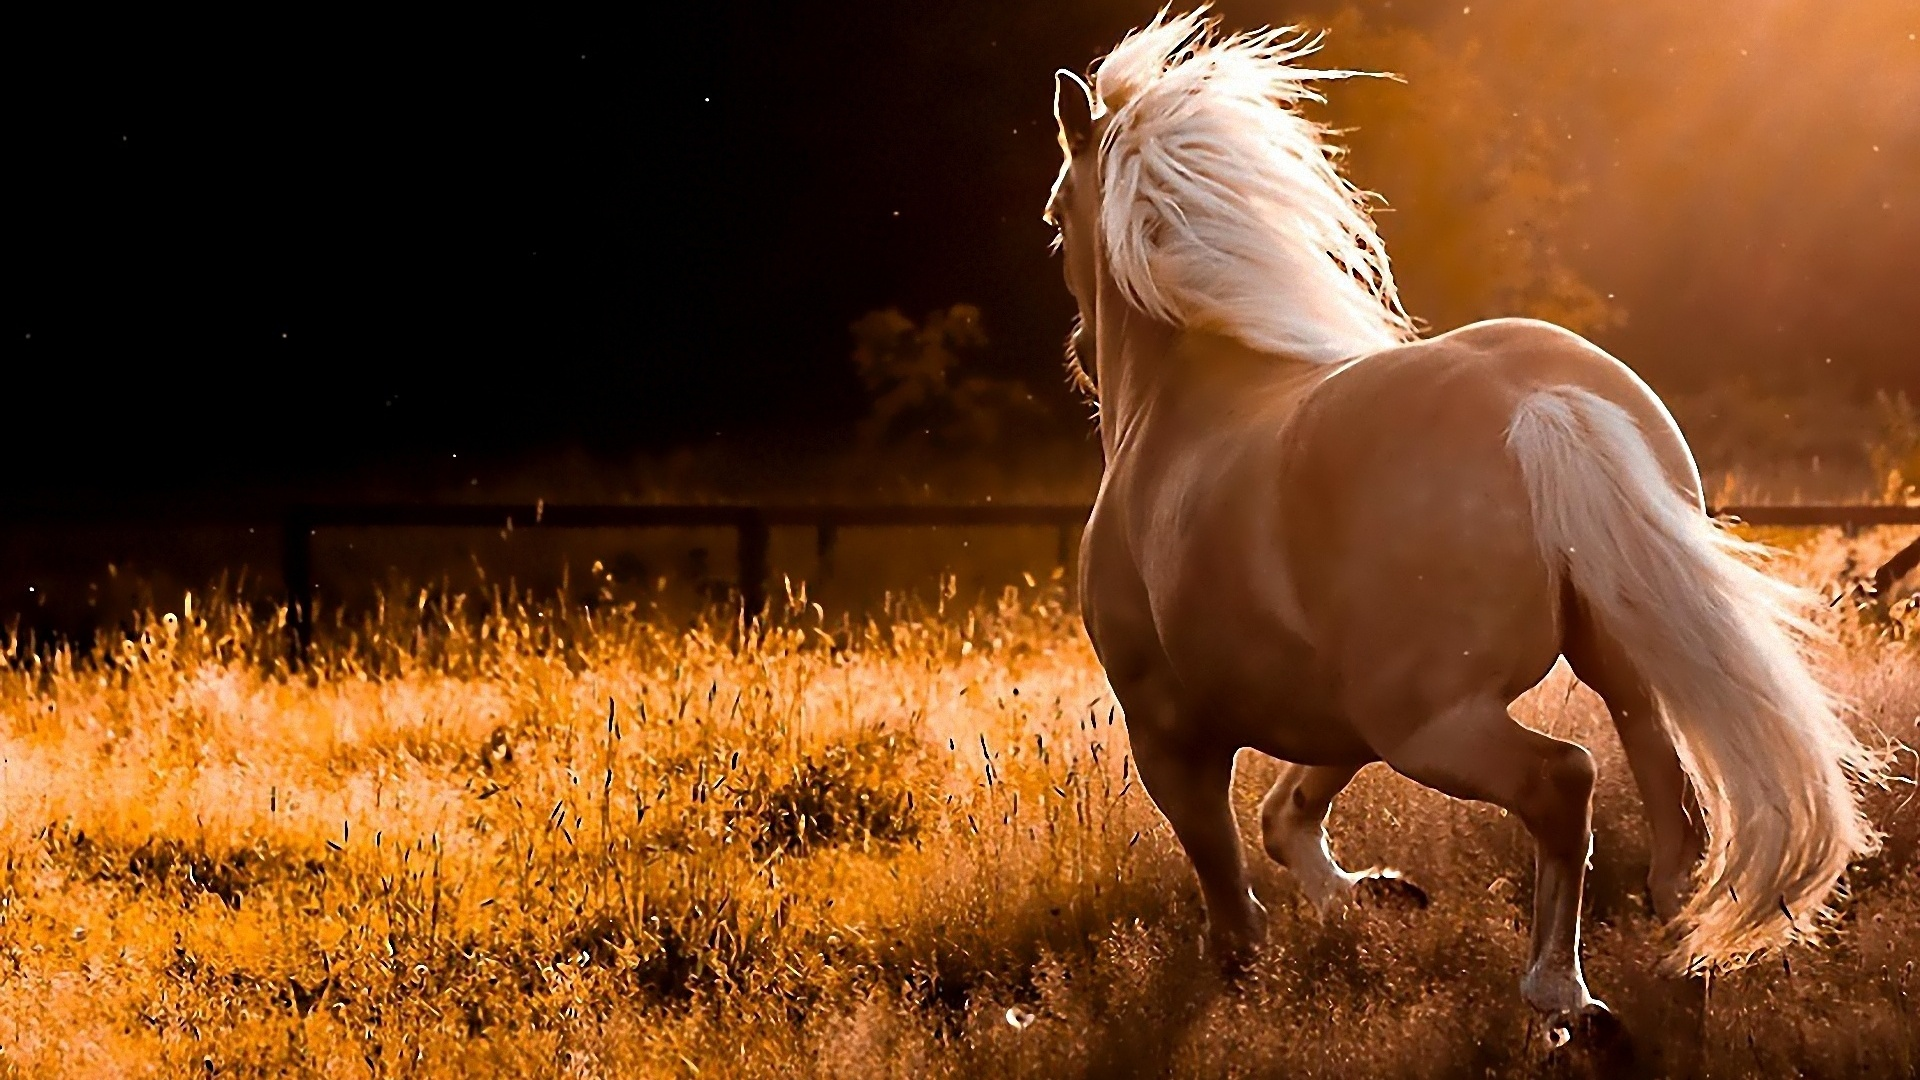 horse wallpapers nice HD Desktop Wallpapers 4k HD